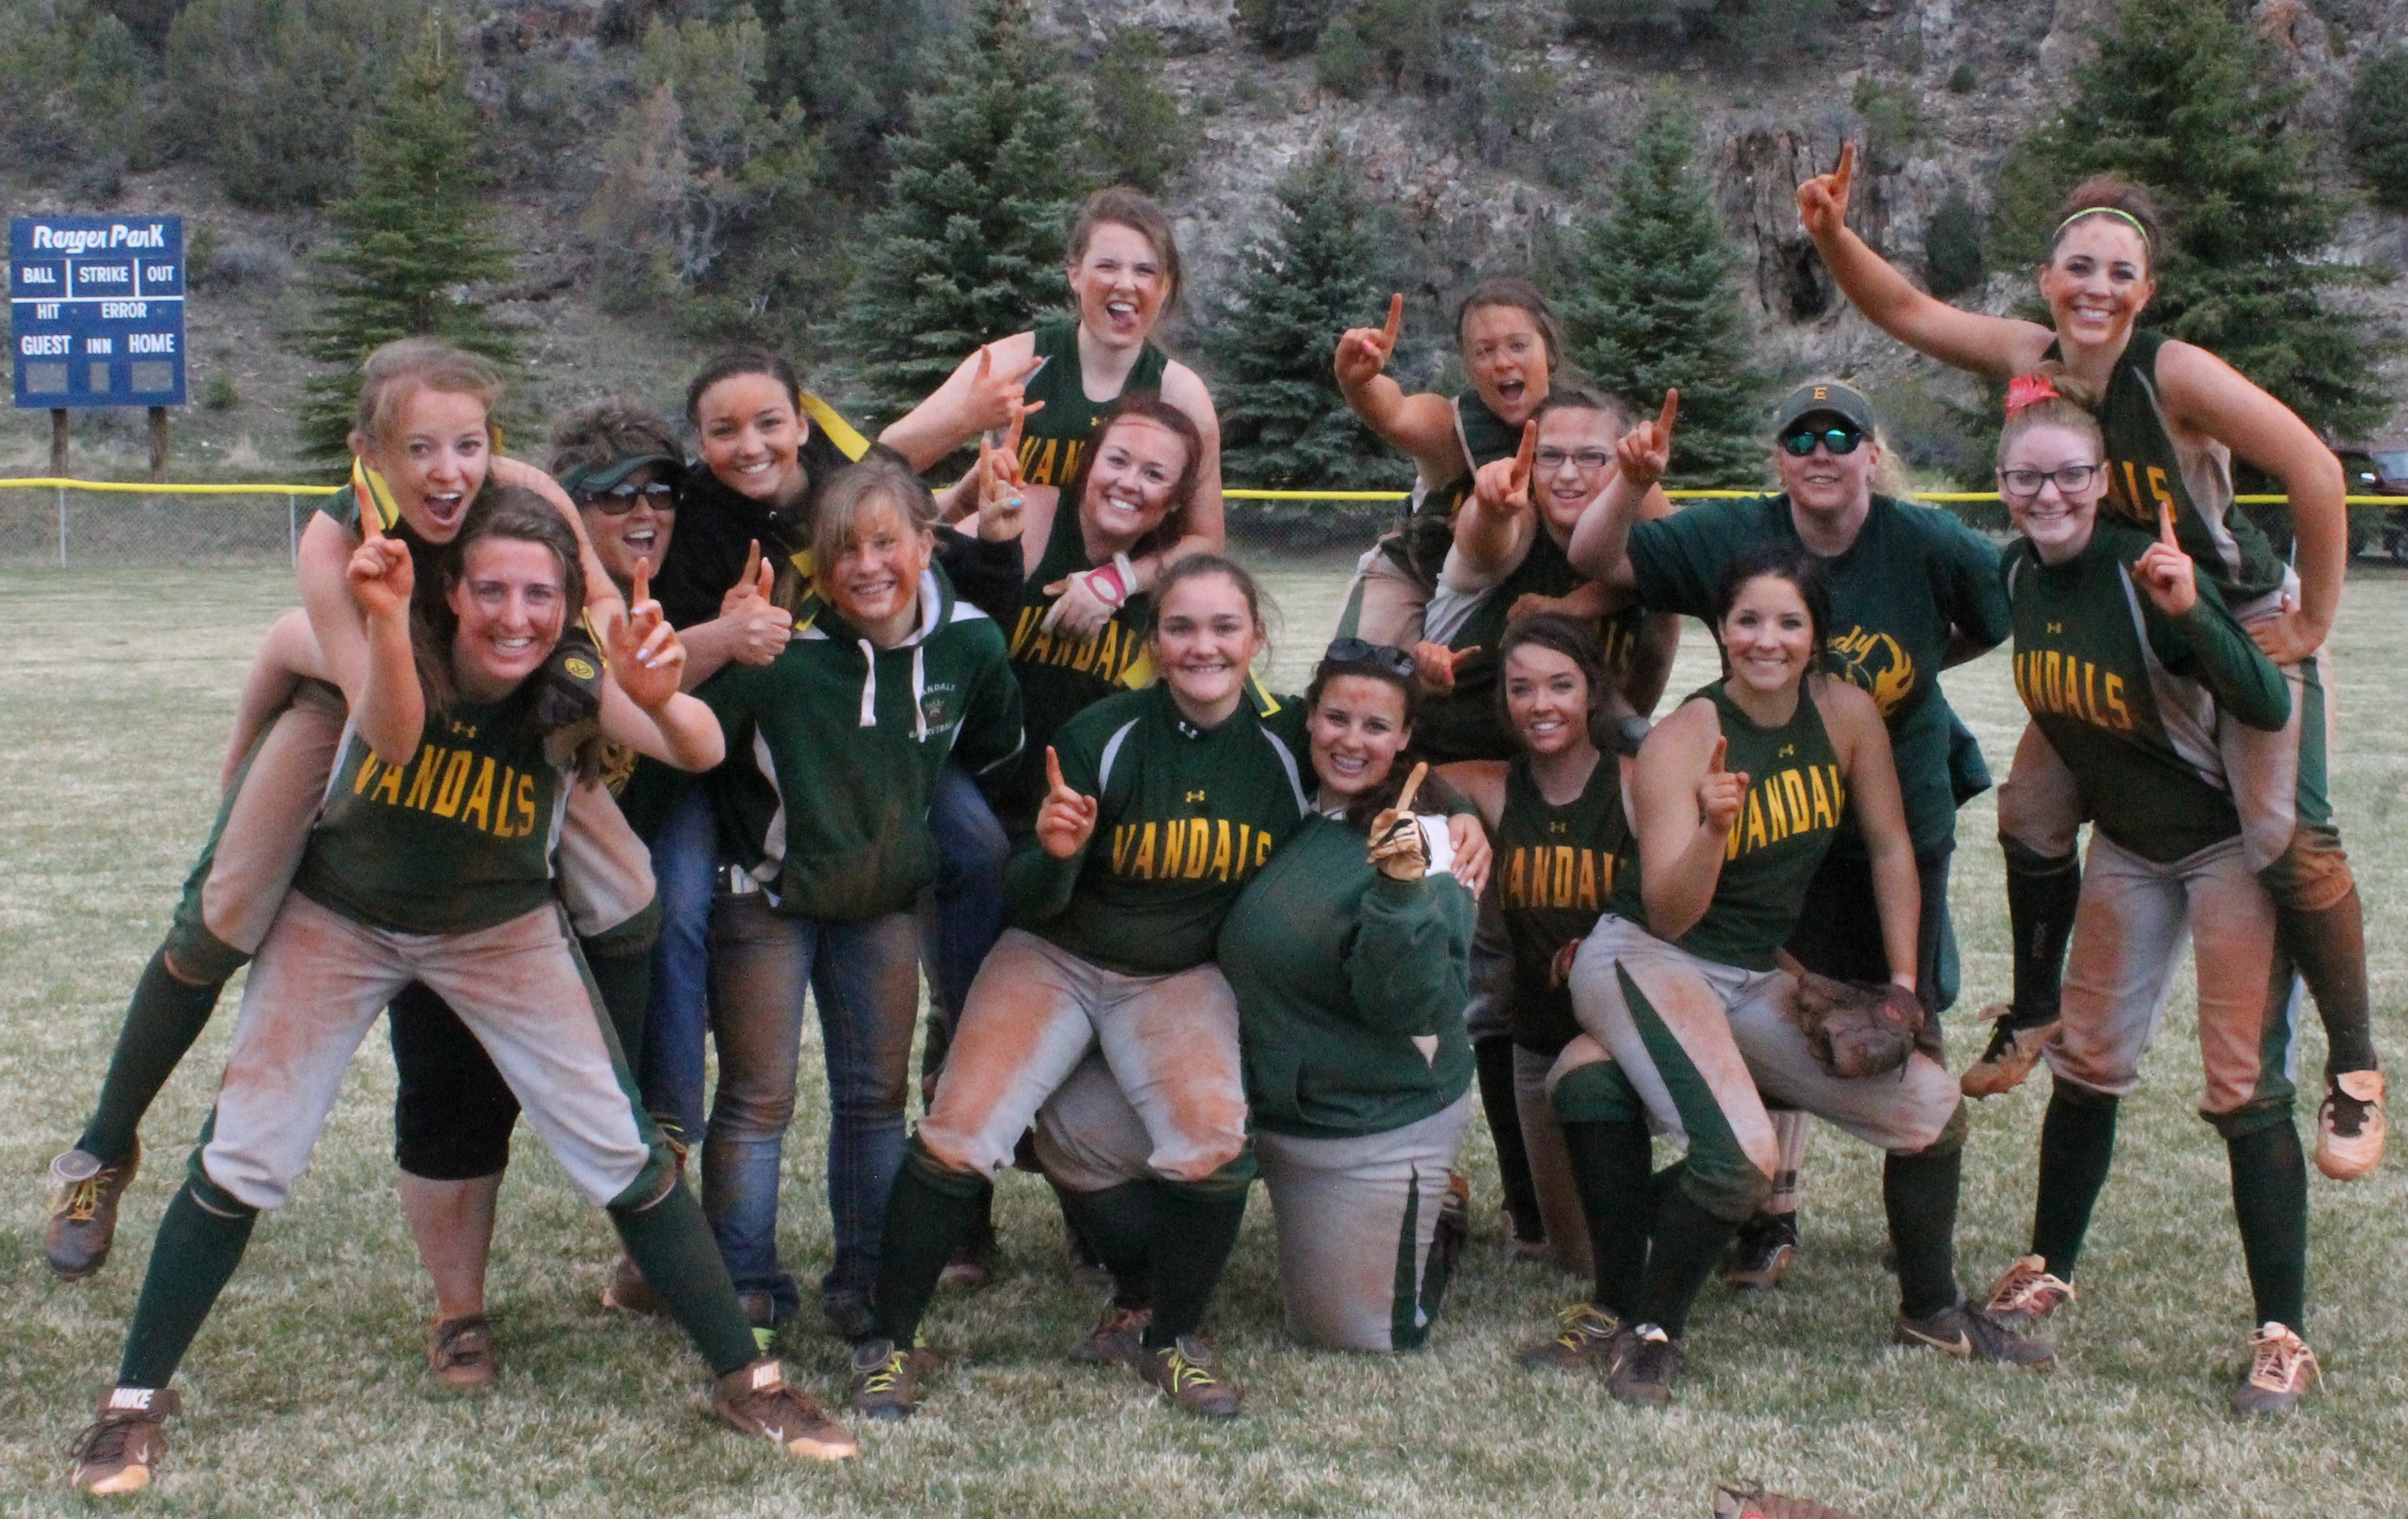 Lady Vandals advance to state tournament